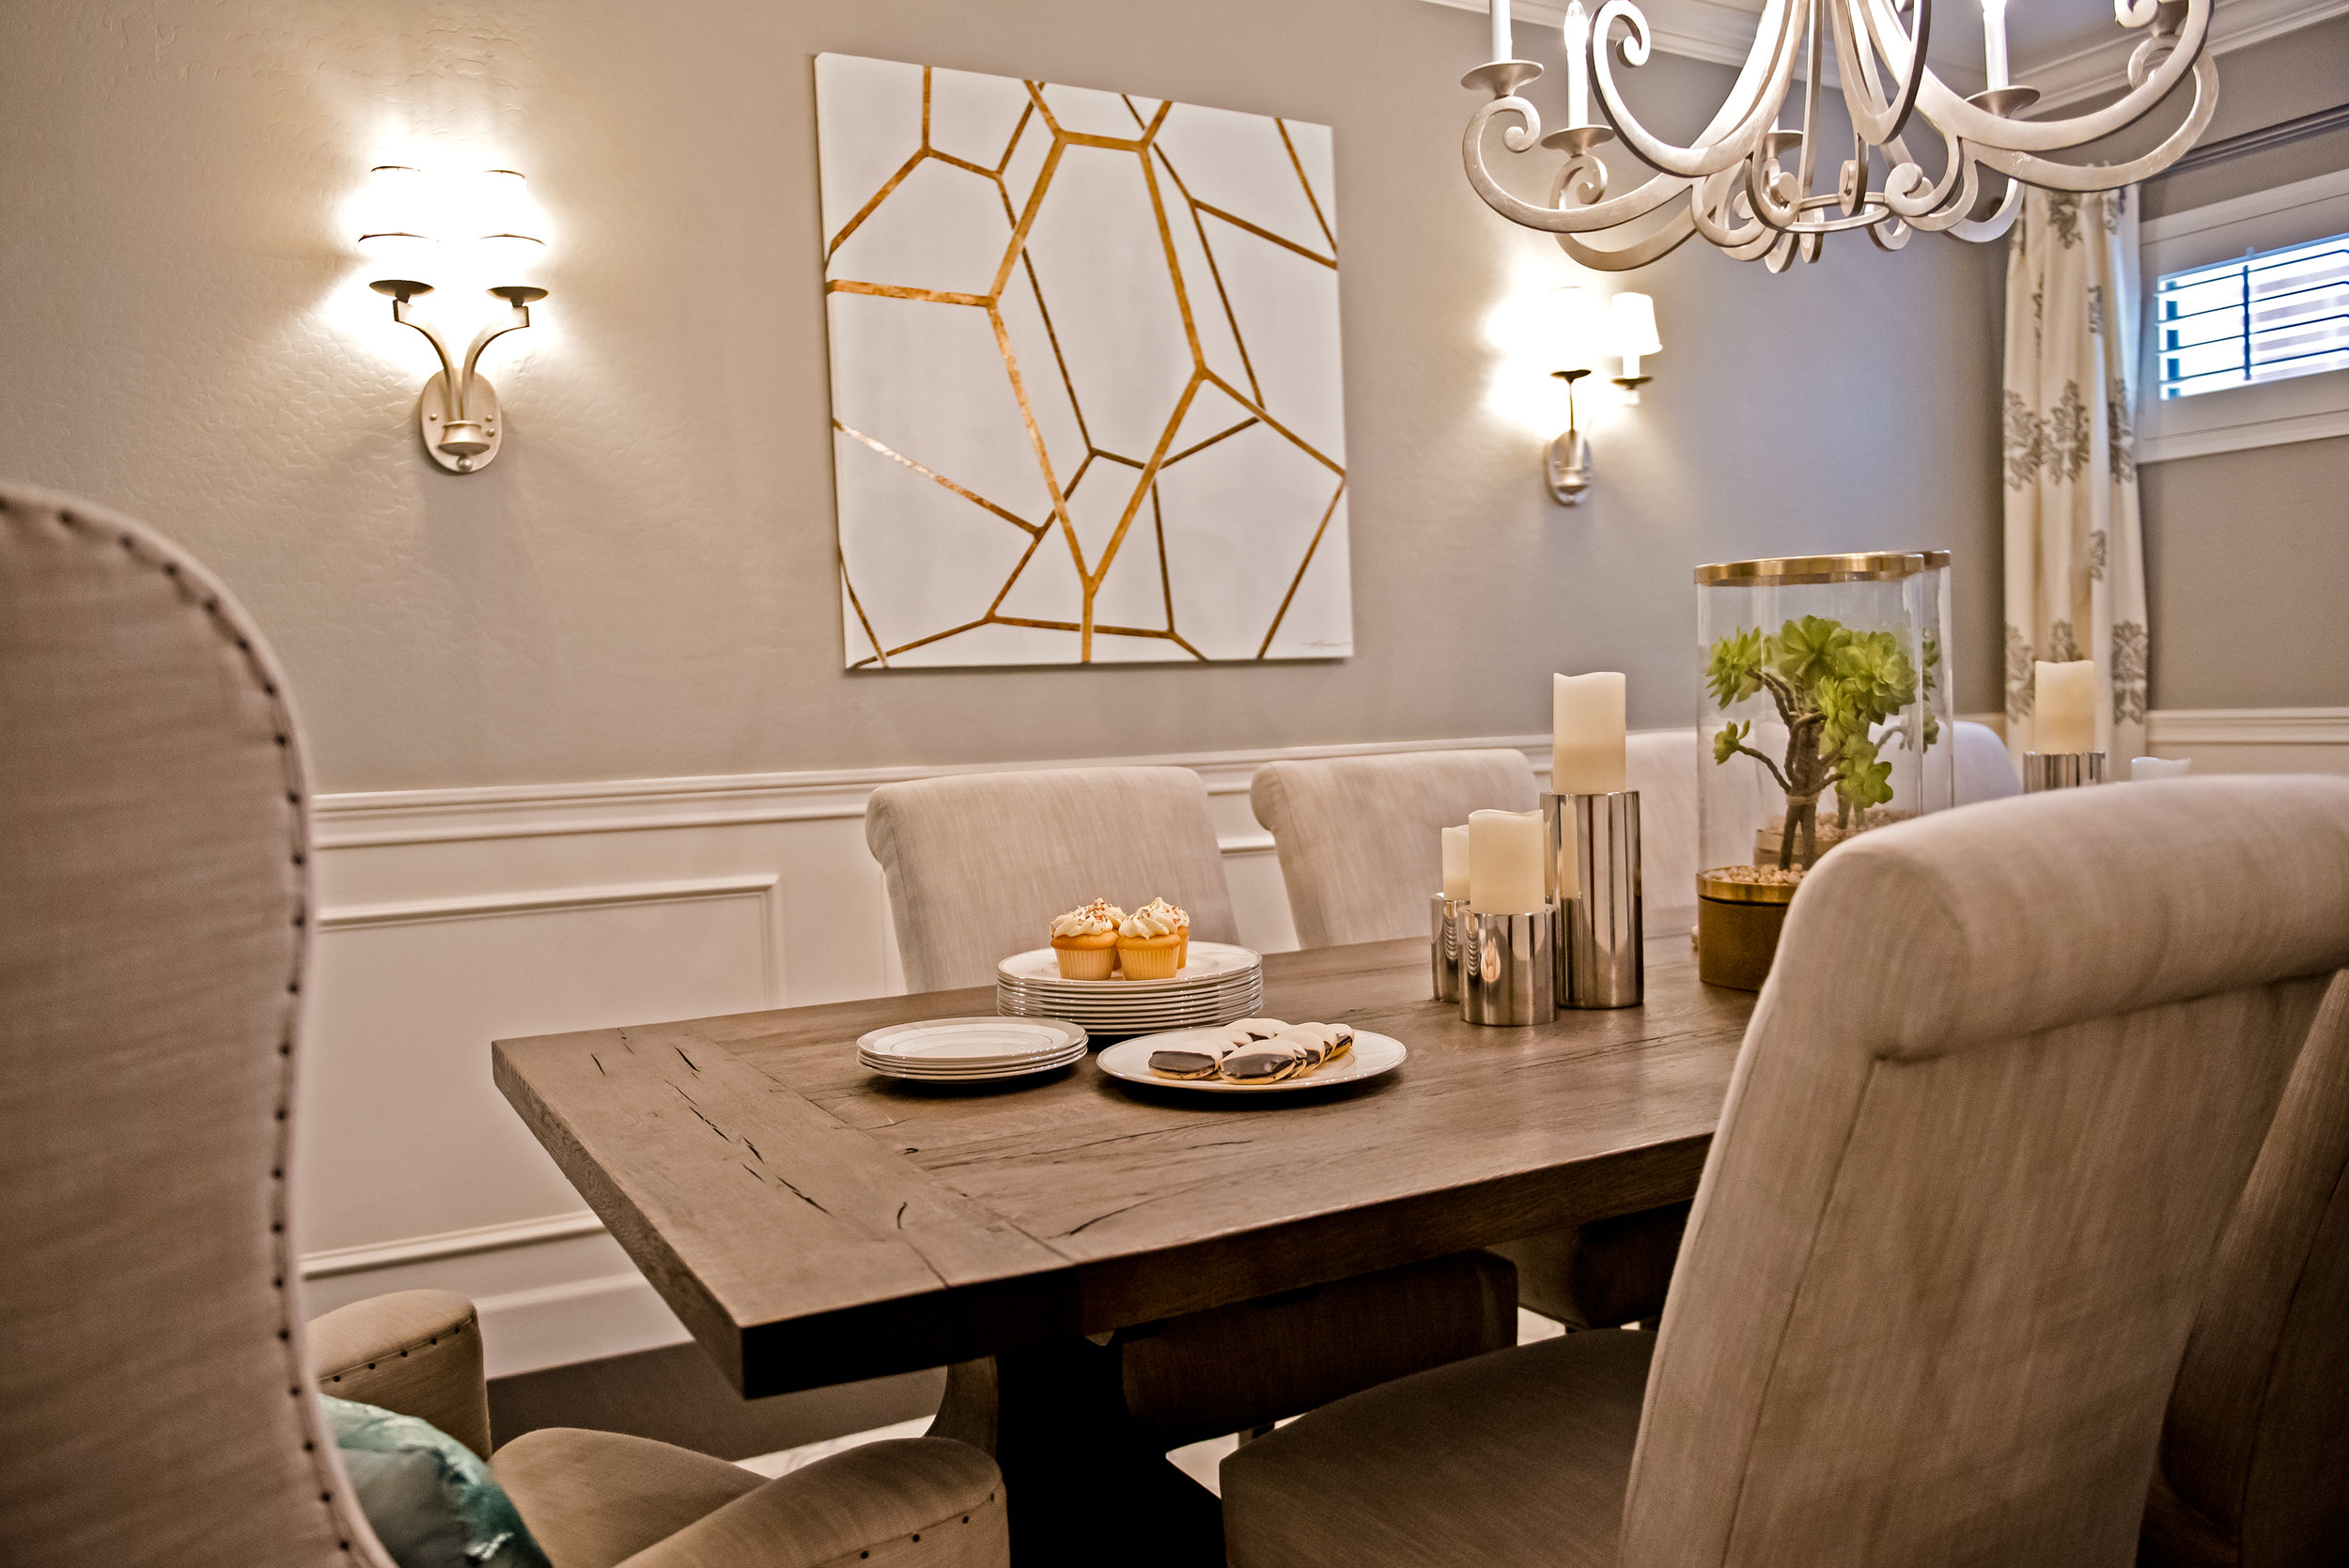 11 - Dining+Transitional+Sconces+CustomArt+Scottsdale.jpg